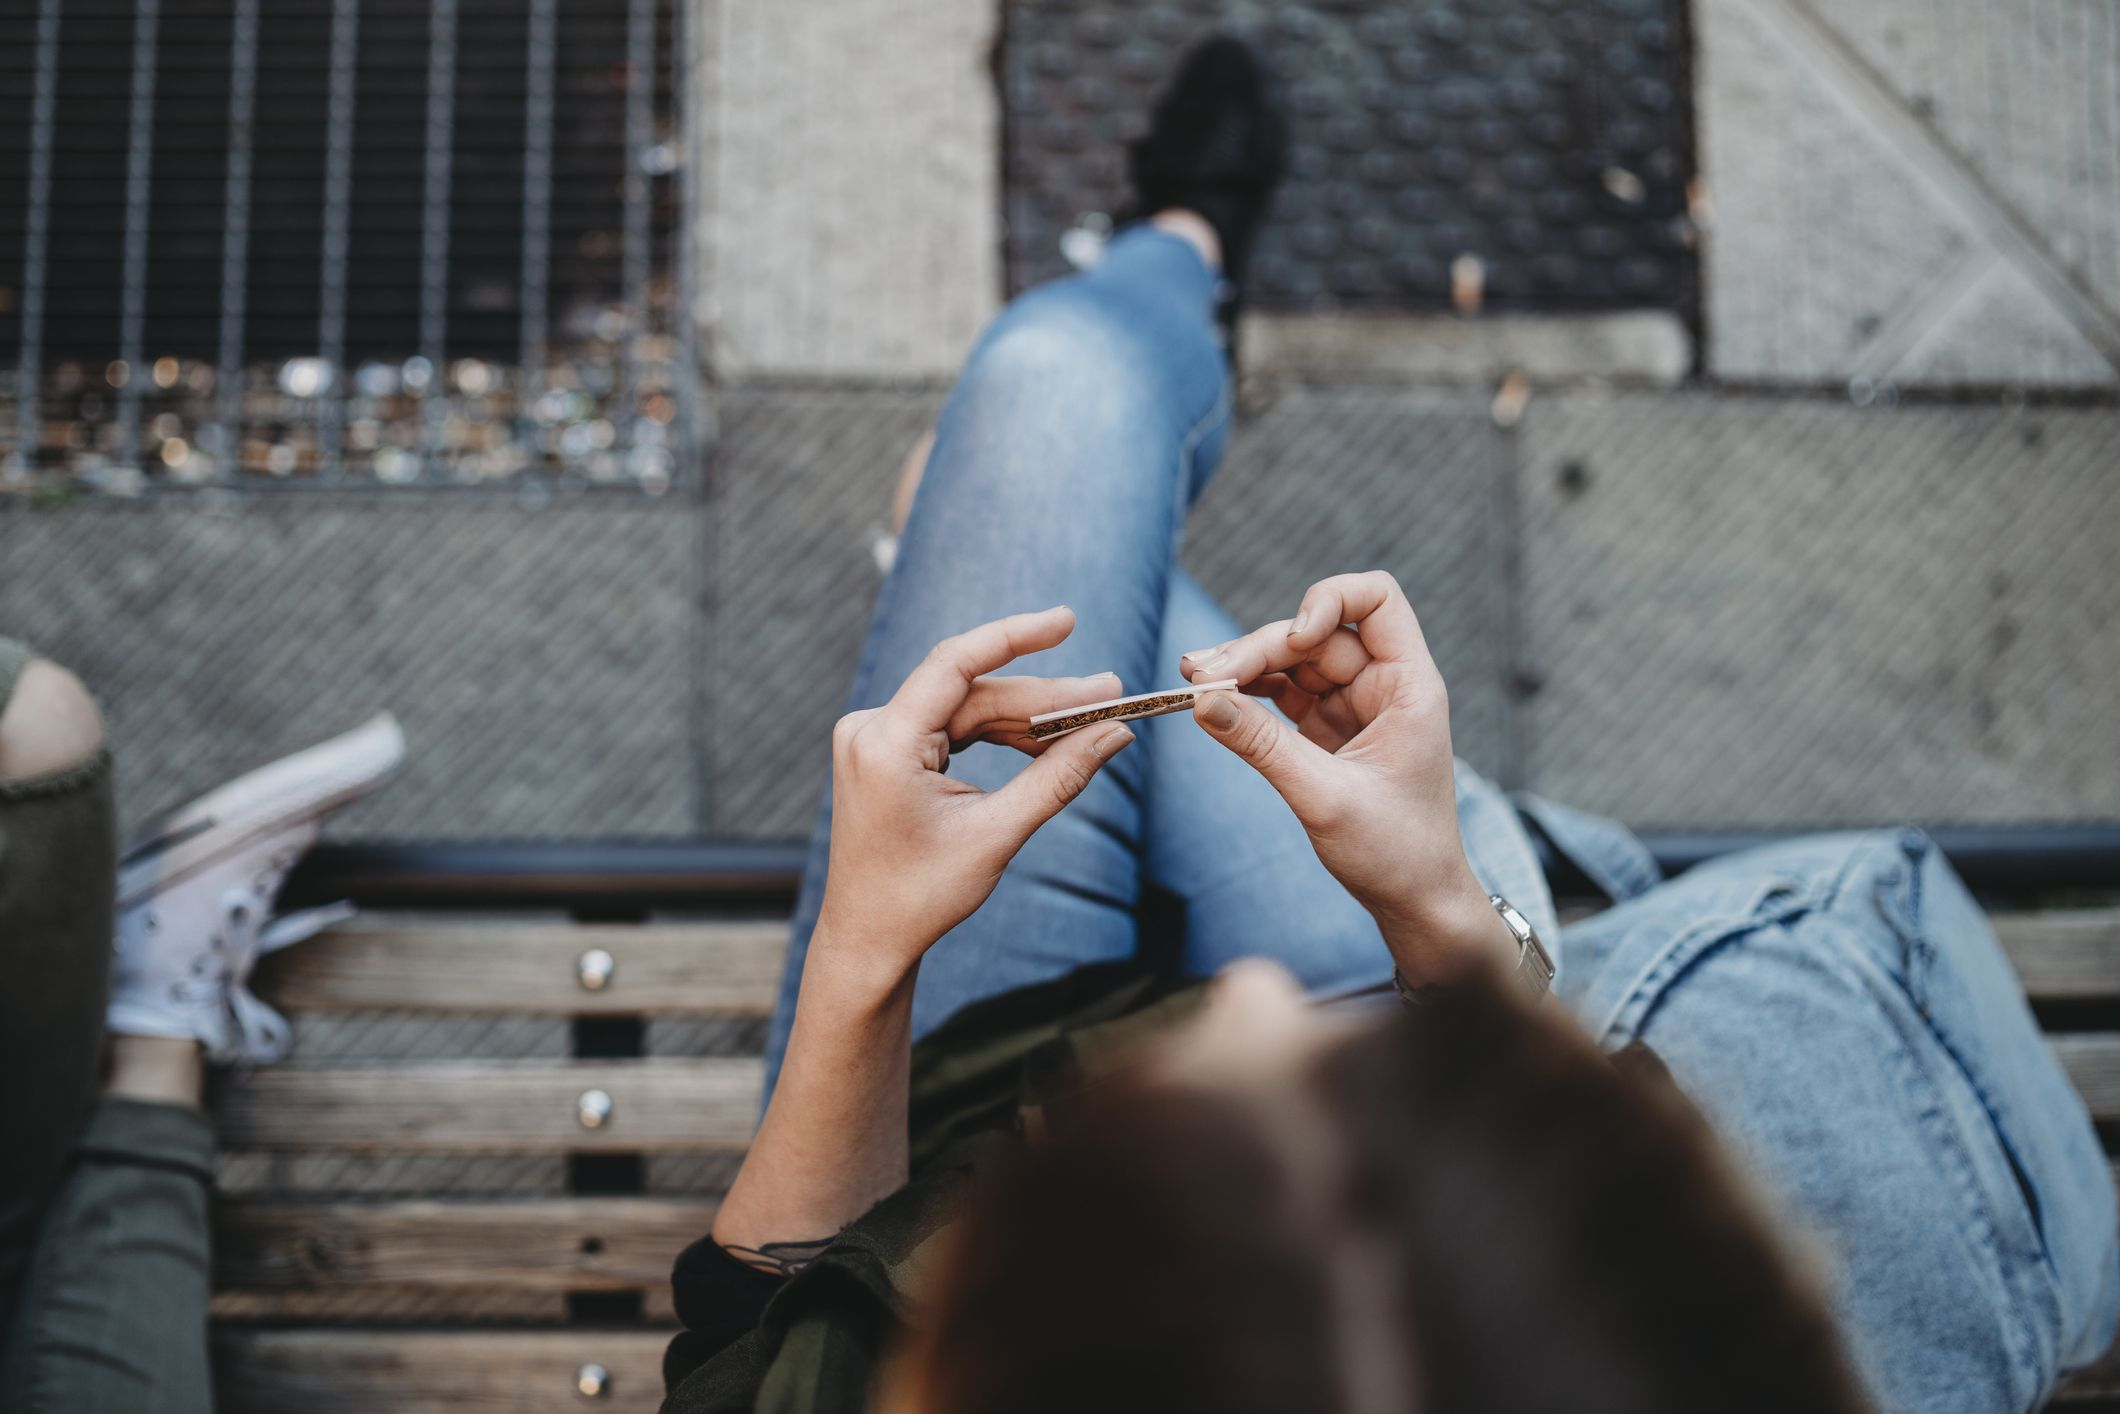 Research Shows Even Nondaily Smokers Face Increased Health Risks